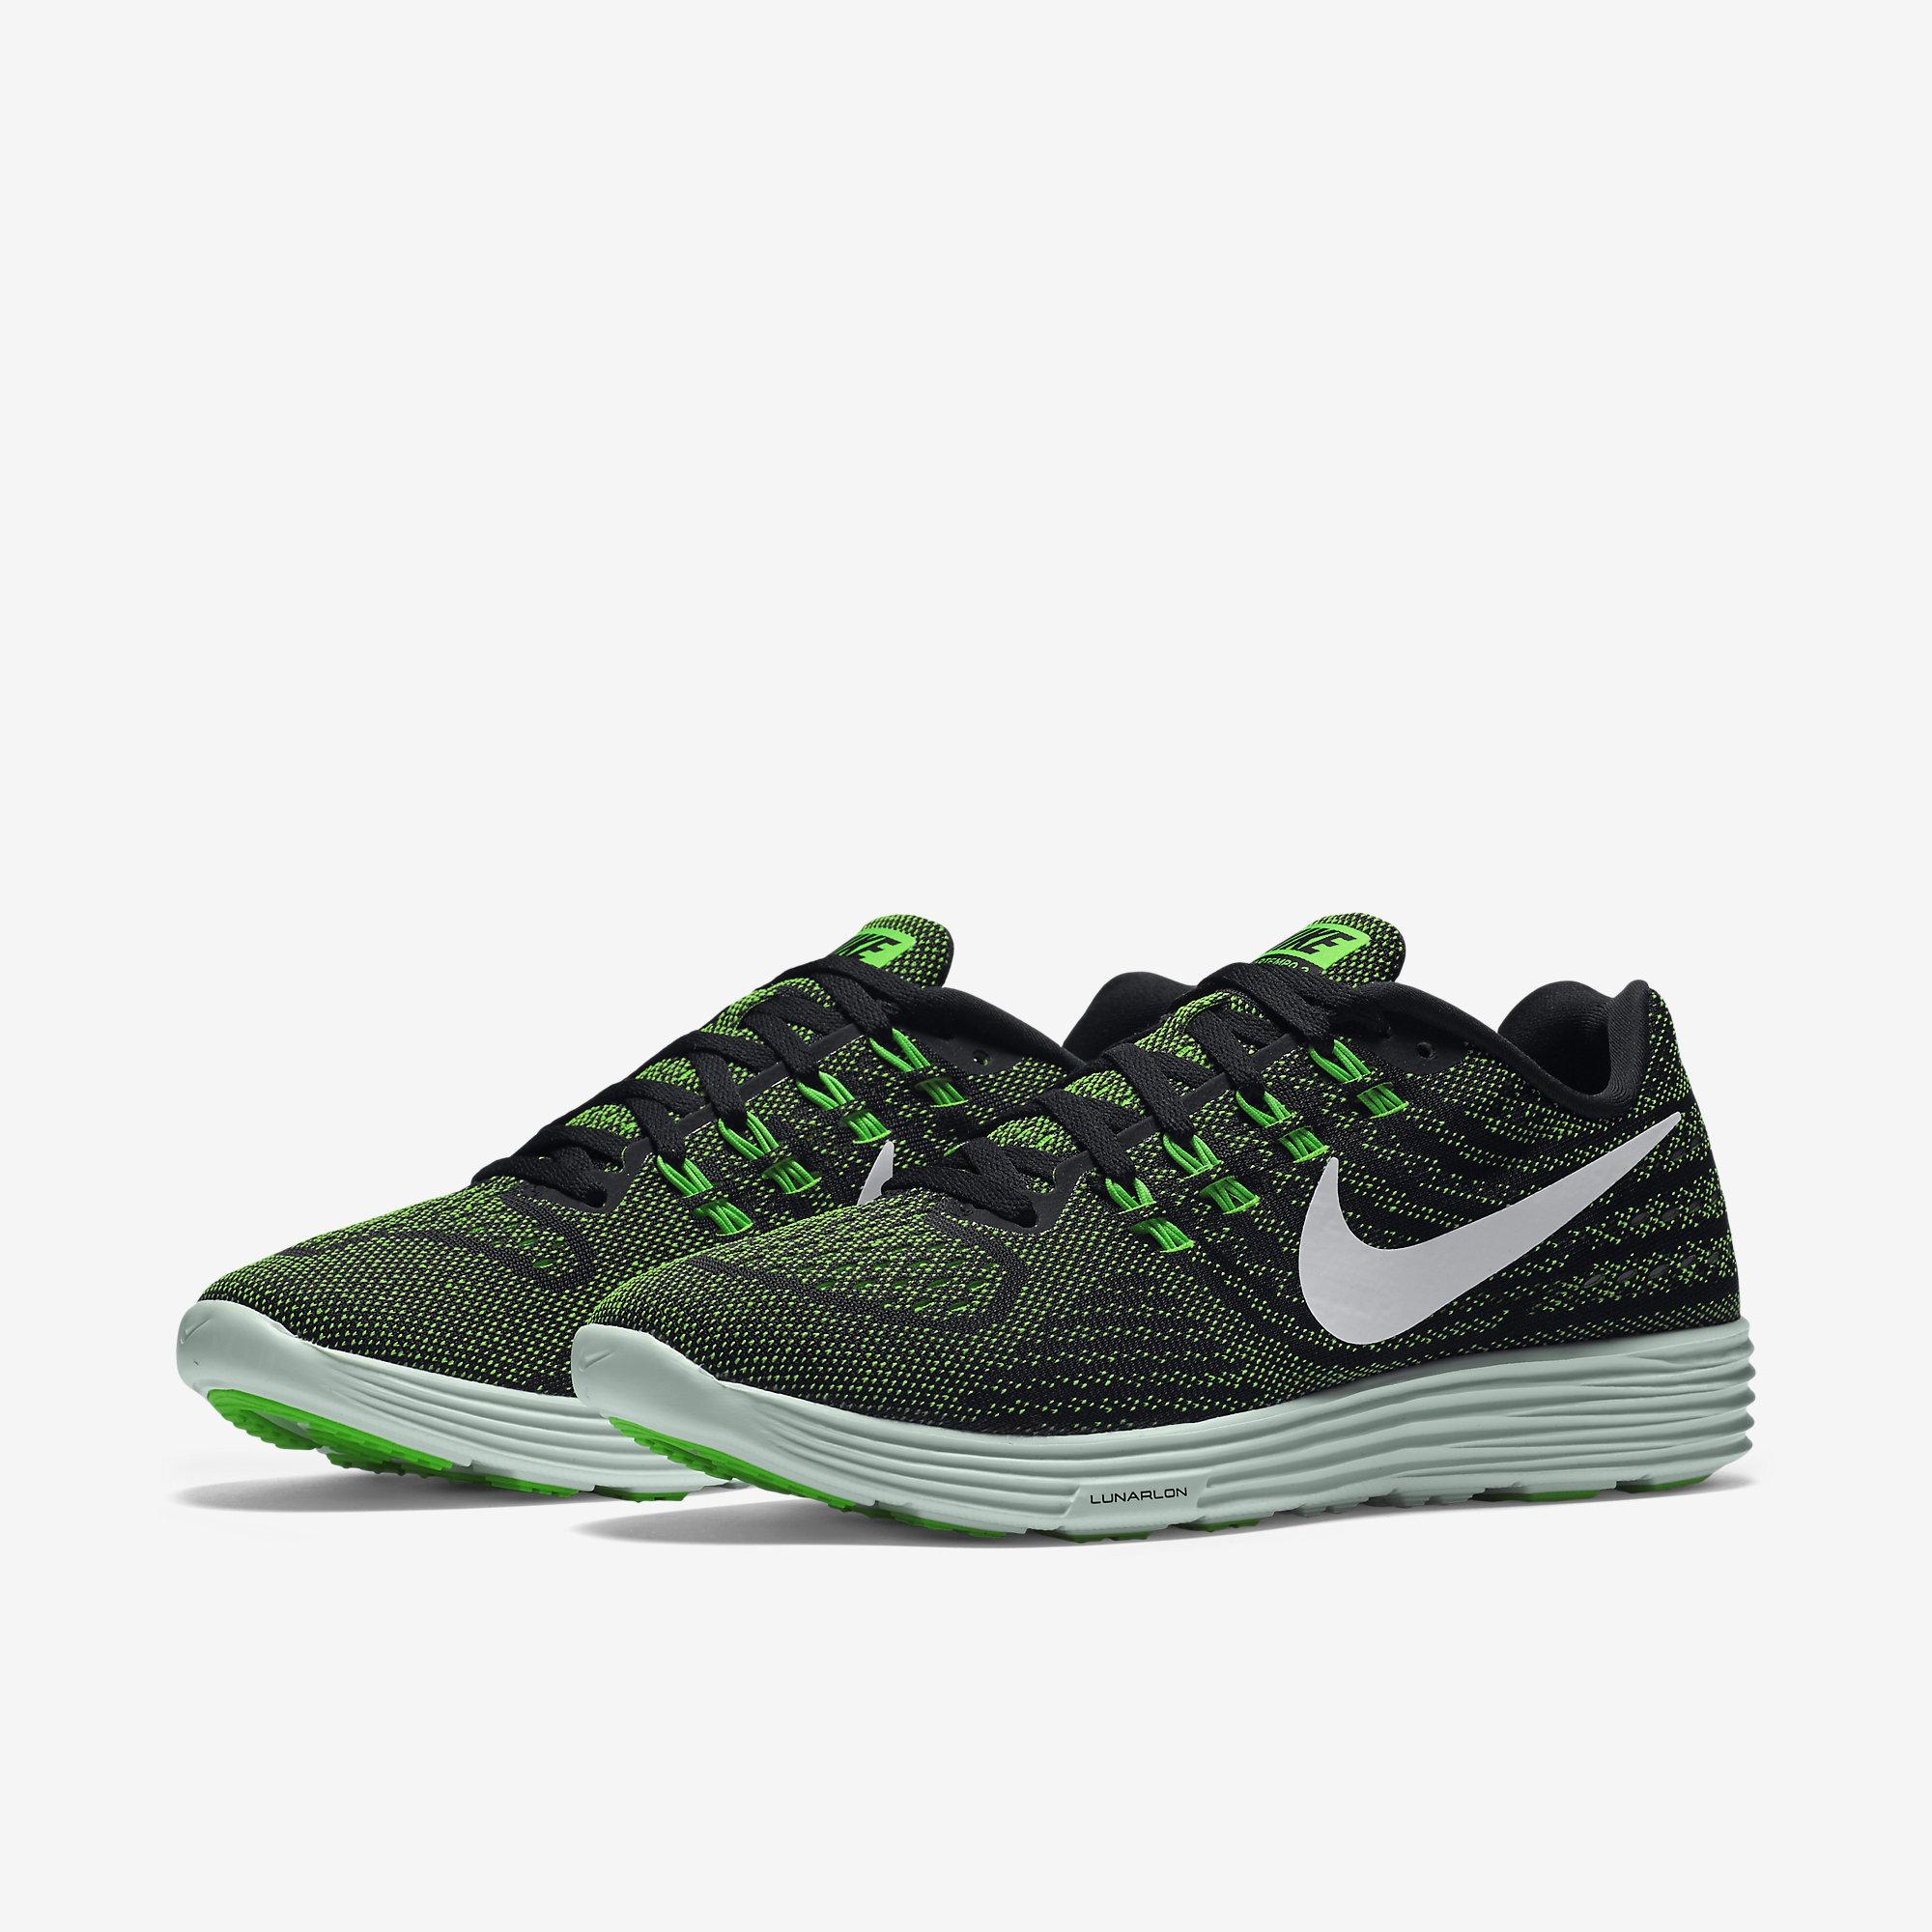 newest 8d3a8 20476 ... wholesale nike womens lunartempo 2 running shoes volt green white 79bf0  c72cf ...